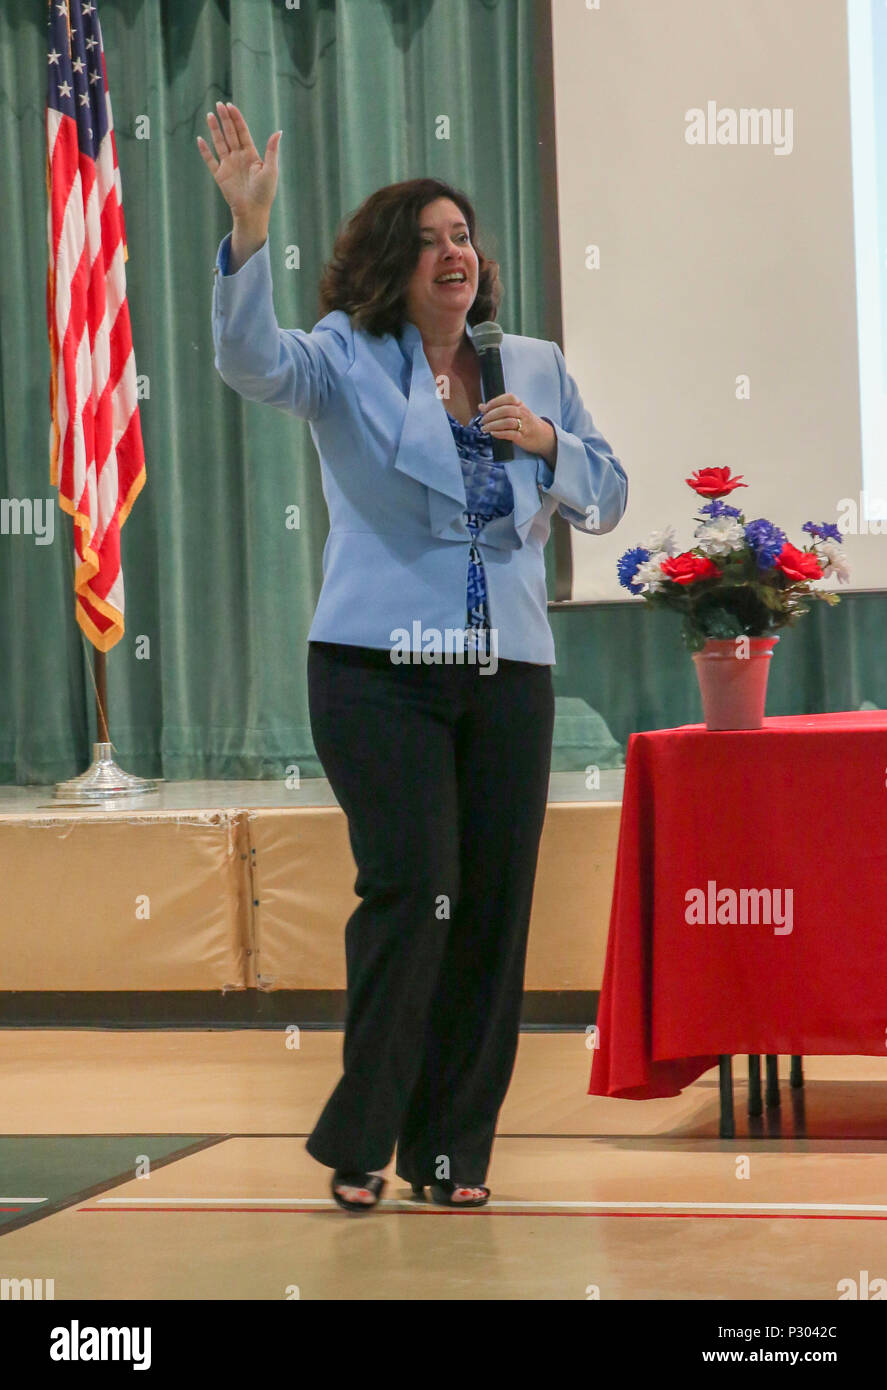 """Dr. Christy Huddleston delivers a speech at the Laurel Bay Communities opening  ceremony at Bolden Elementary/Middle School Aug. 11. To illustrate how much  teaching has changed she took a poll of the audience. The theme of the opening was  """"embracing change;changes that have been made will create a better atmosphere  of colaboration and teamwork. Huddleston is Department of Defense Education  Activities Americas Southeast District Superintendent. Stock Photo"""